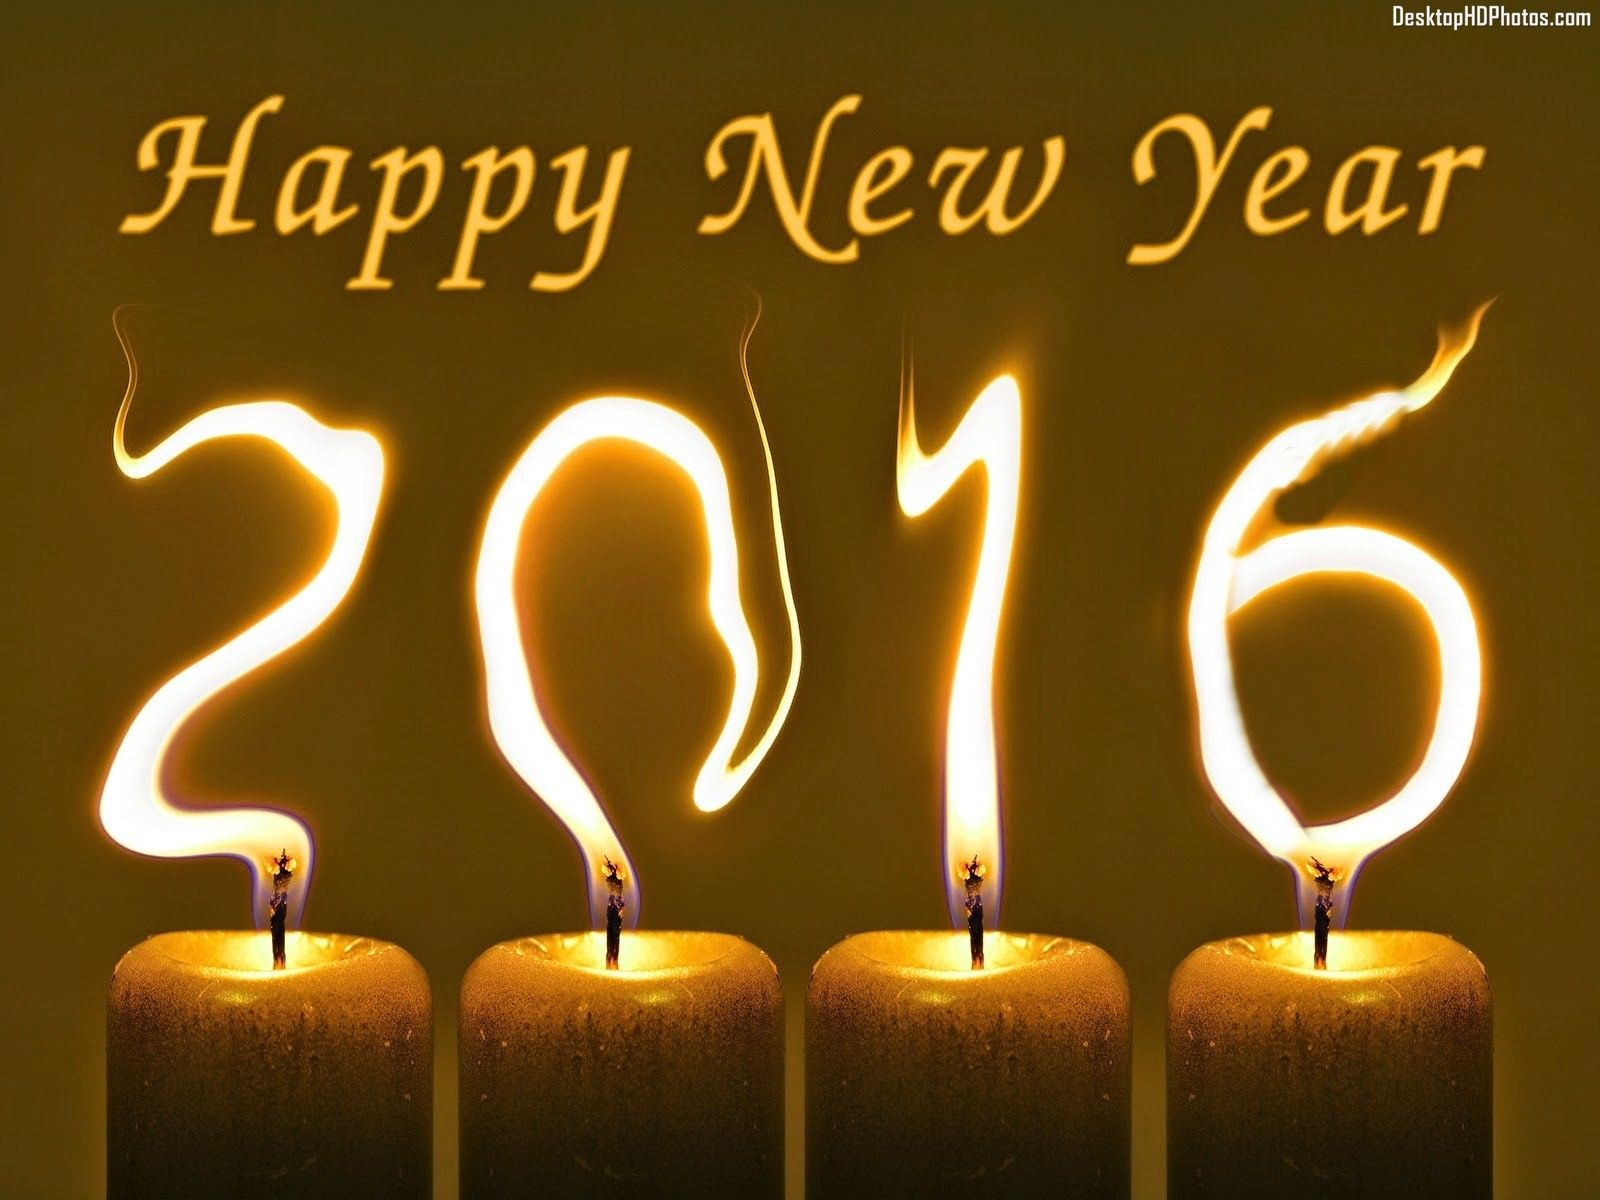 NEW YEAR Wishes For 2016 Pictures, Photos, and Images for ...